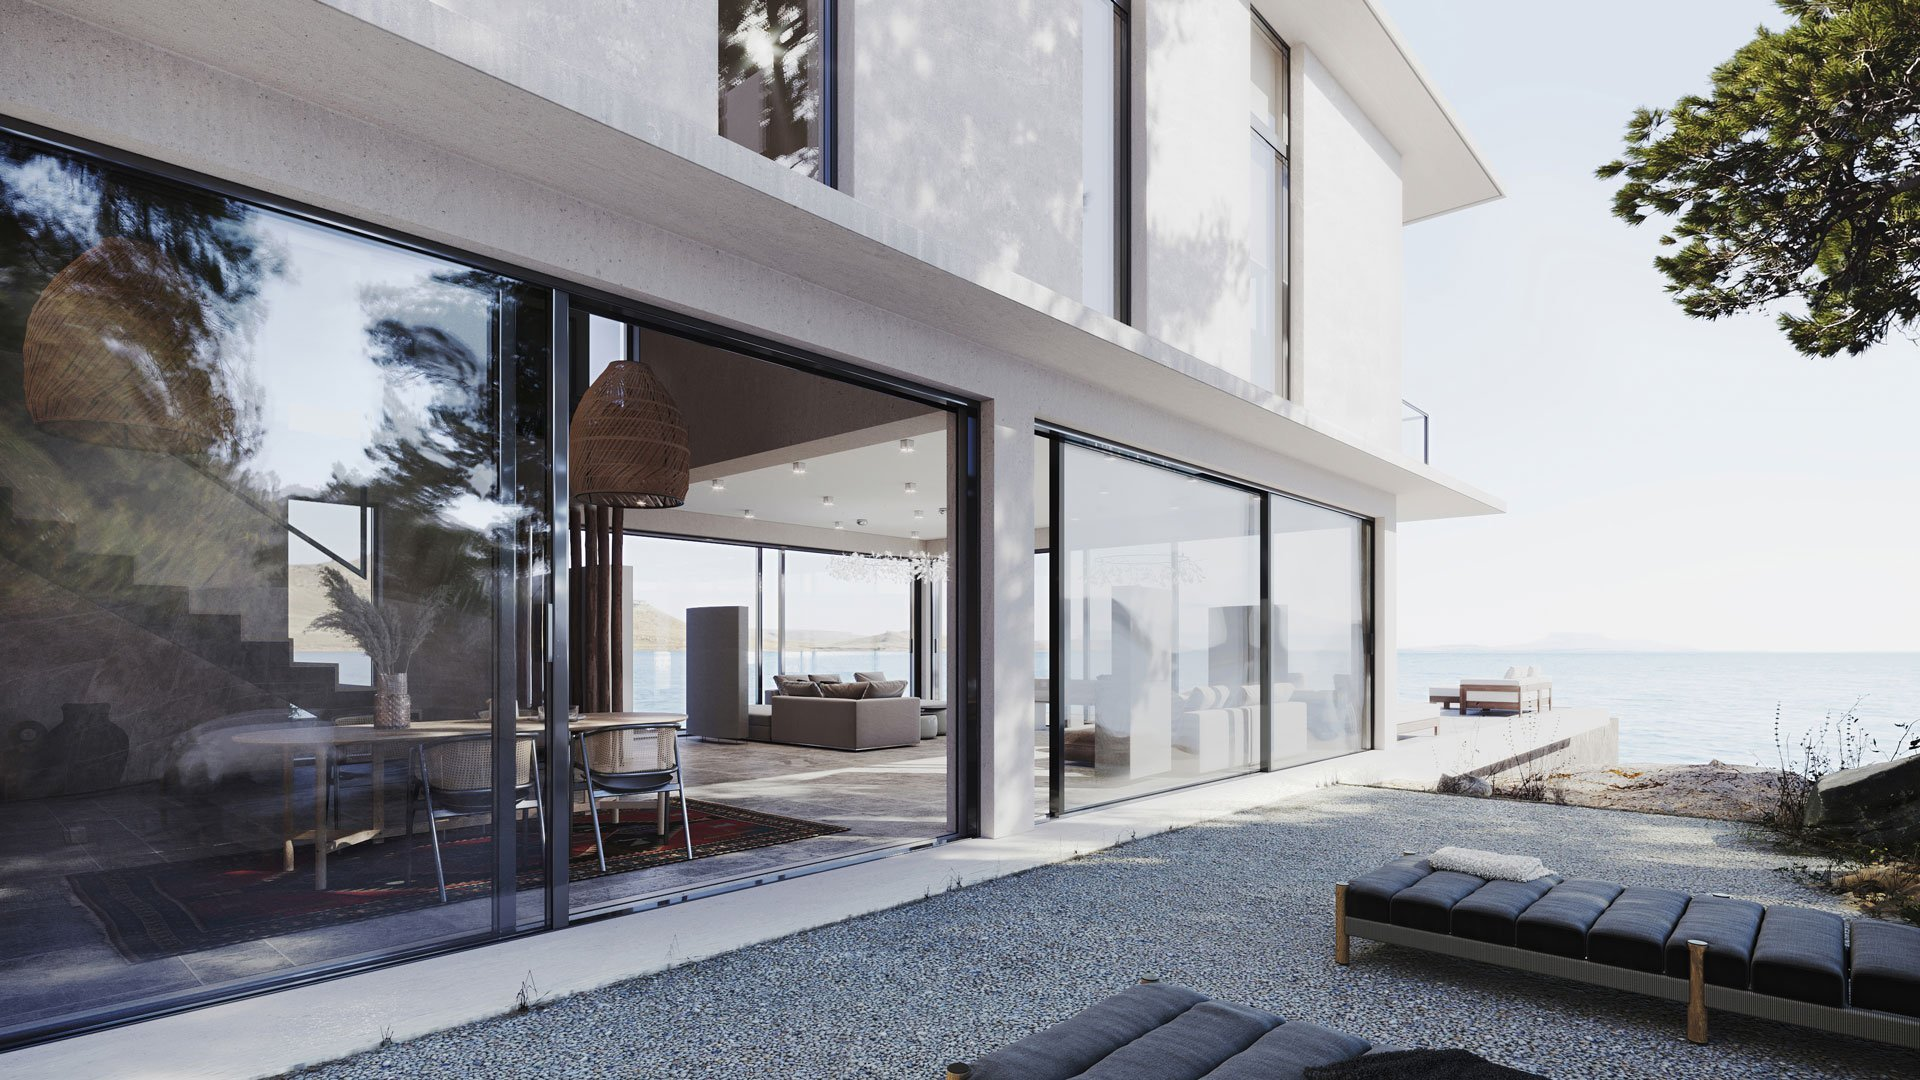 3D Visualization Services for a House Design